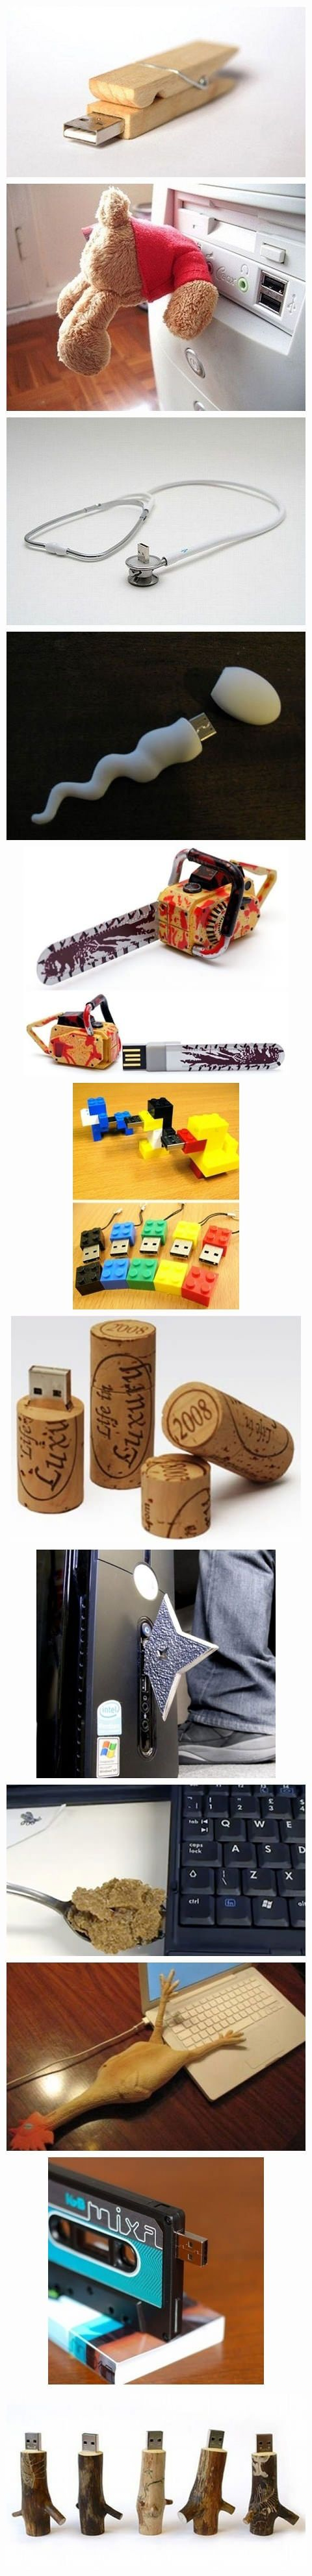 More! Creative USB flash drives - people really come up with some funny stuff! #creativity